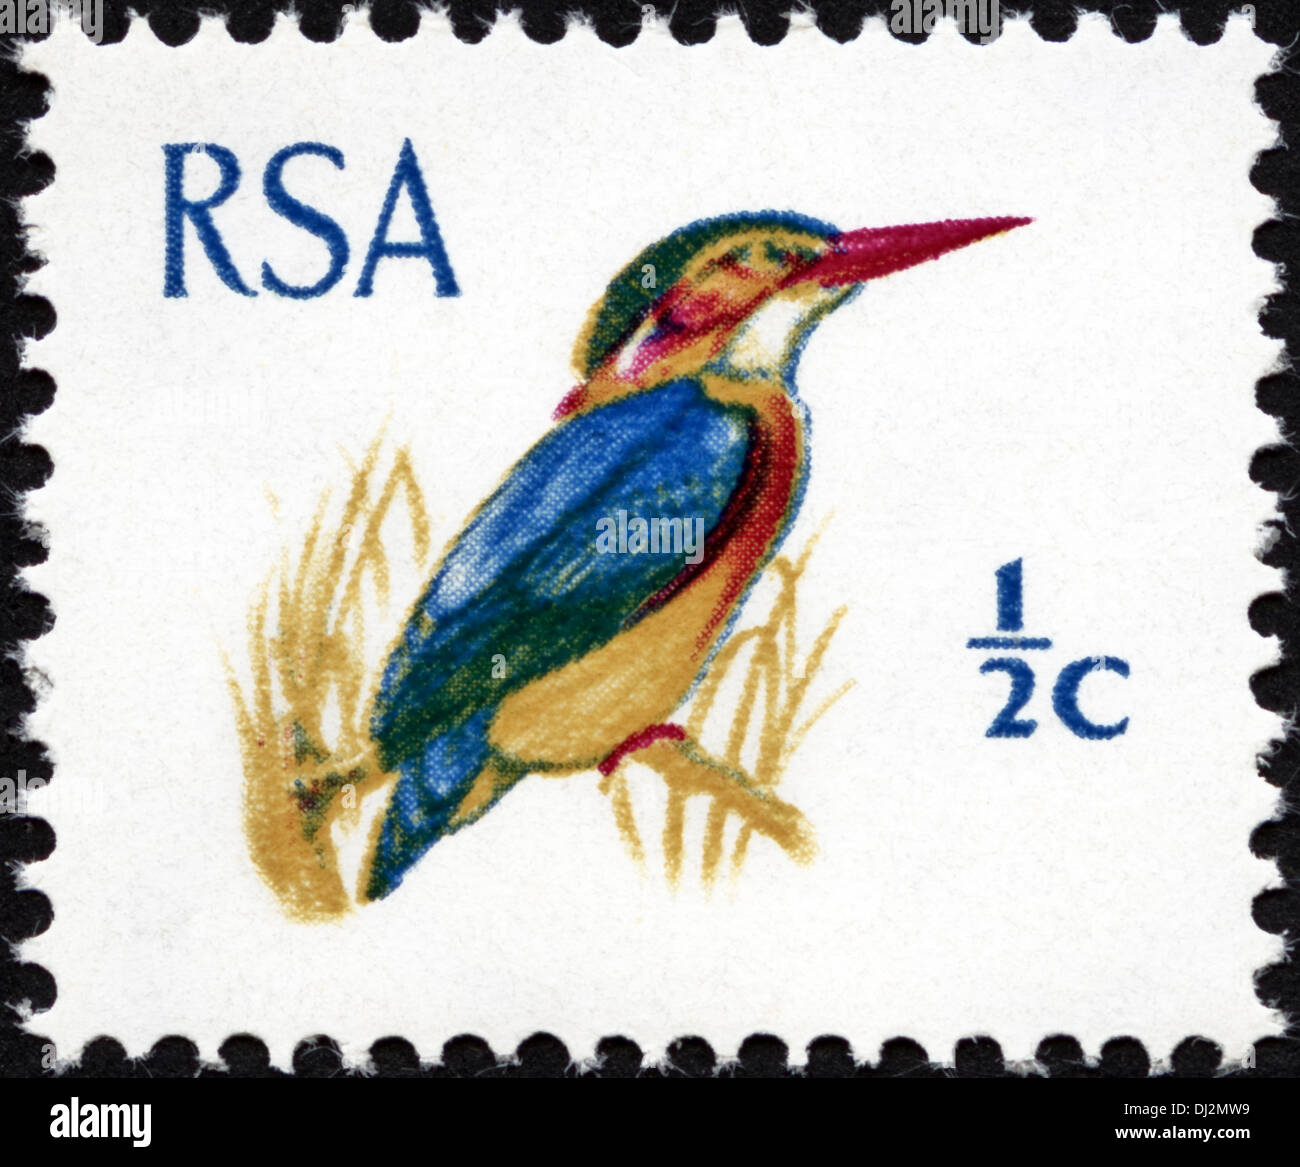 postage stamp Republic of South Africa RSA ½c featuring Kingfisher dated 1969 - Stock Image